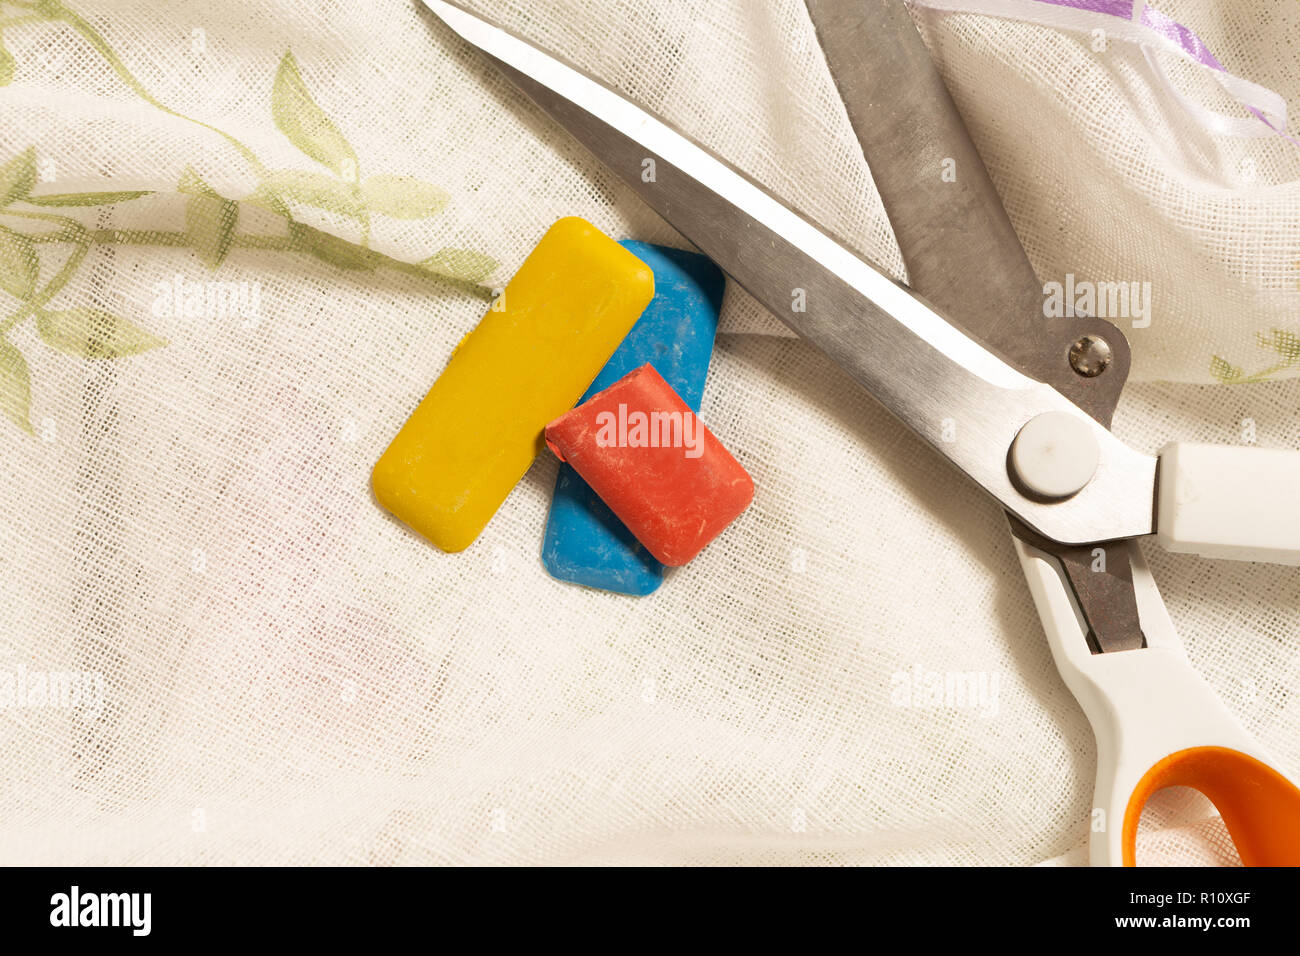 Scissors and colourful tailor chalk on white curtain fabric as diy concept - Stock Image